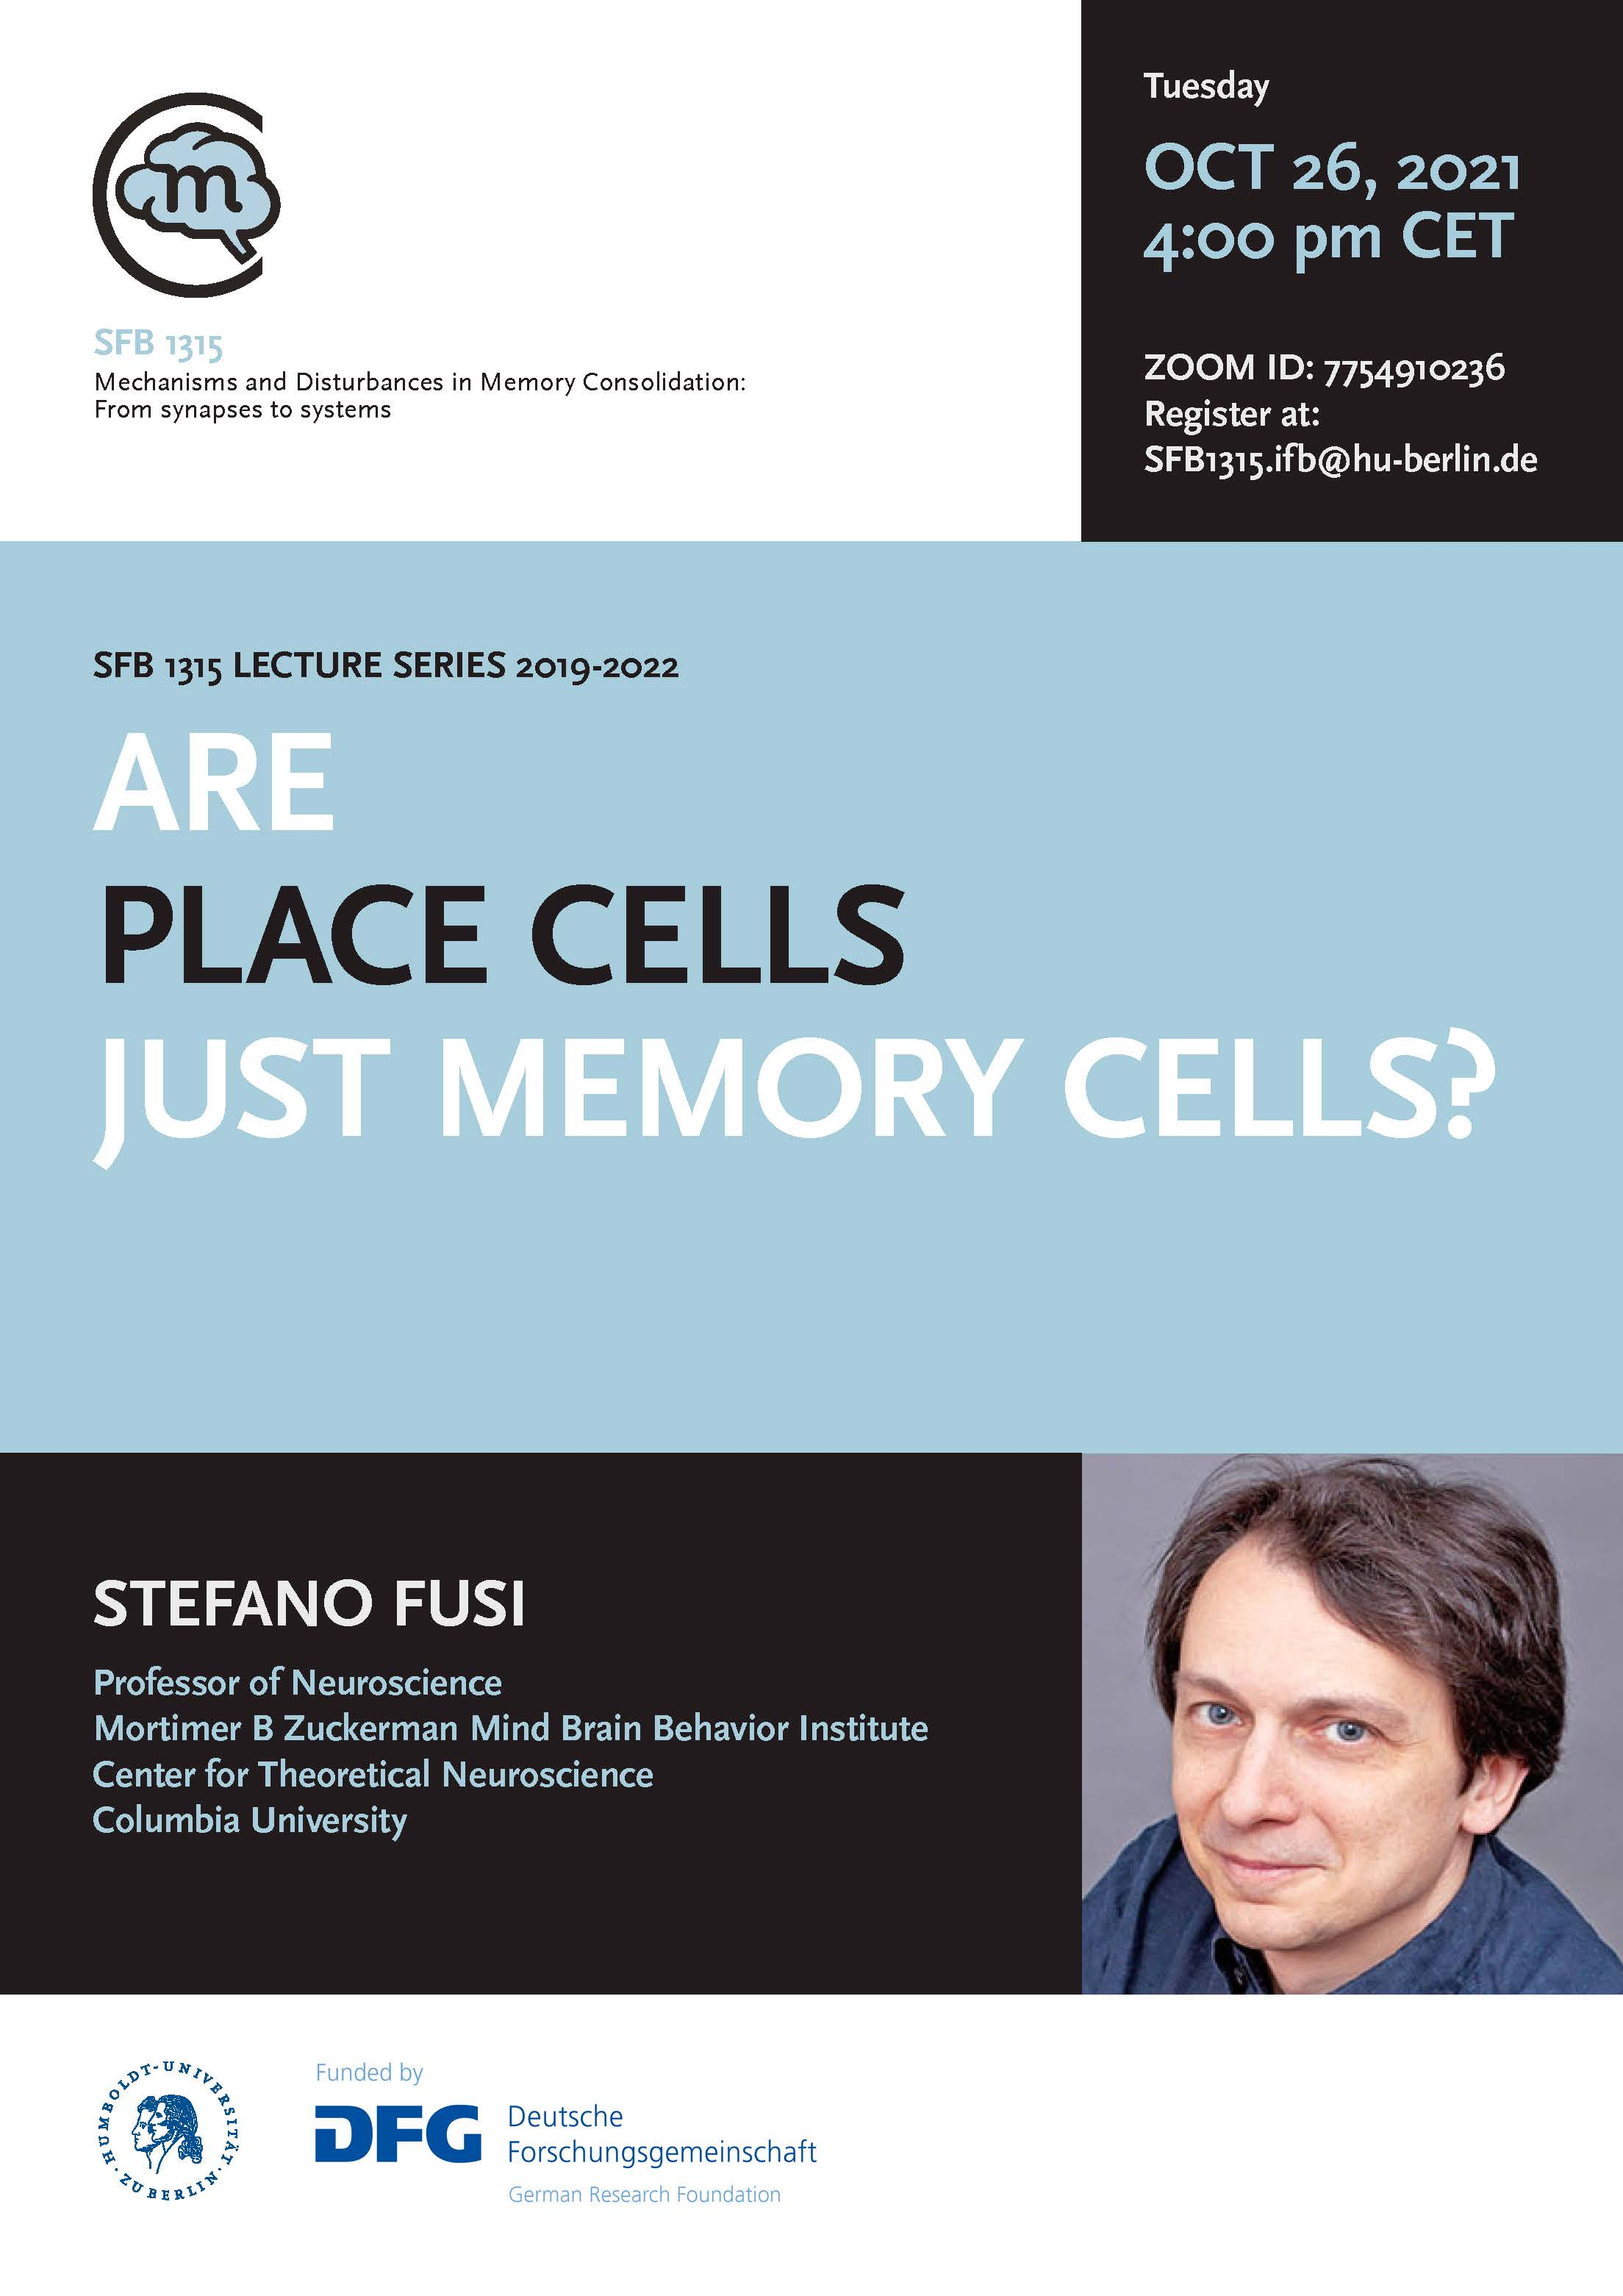 CRC 1315 Lecture: Are place cells just memory cells? @ Zoom ID: 7754910236